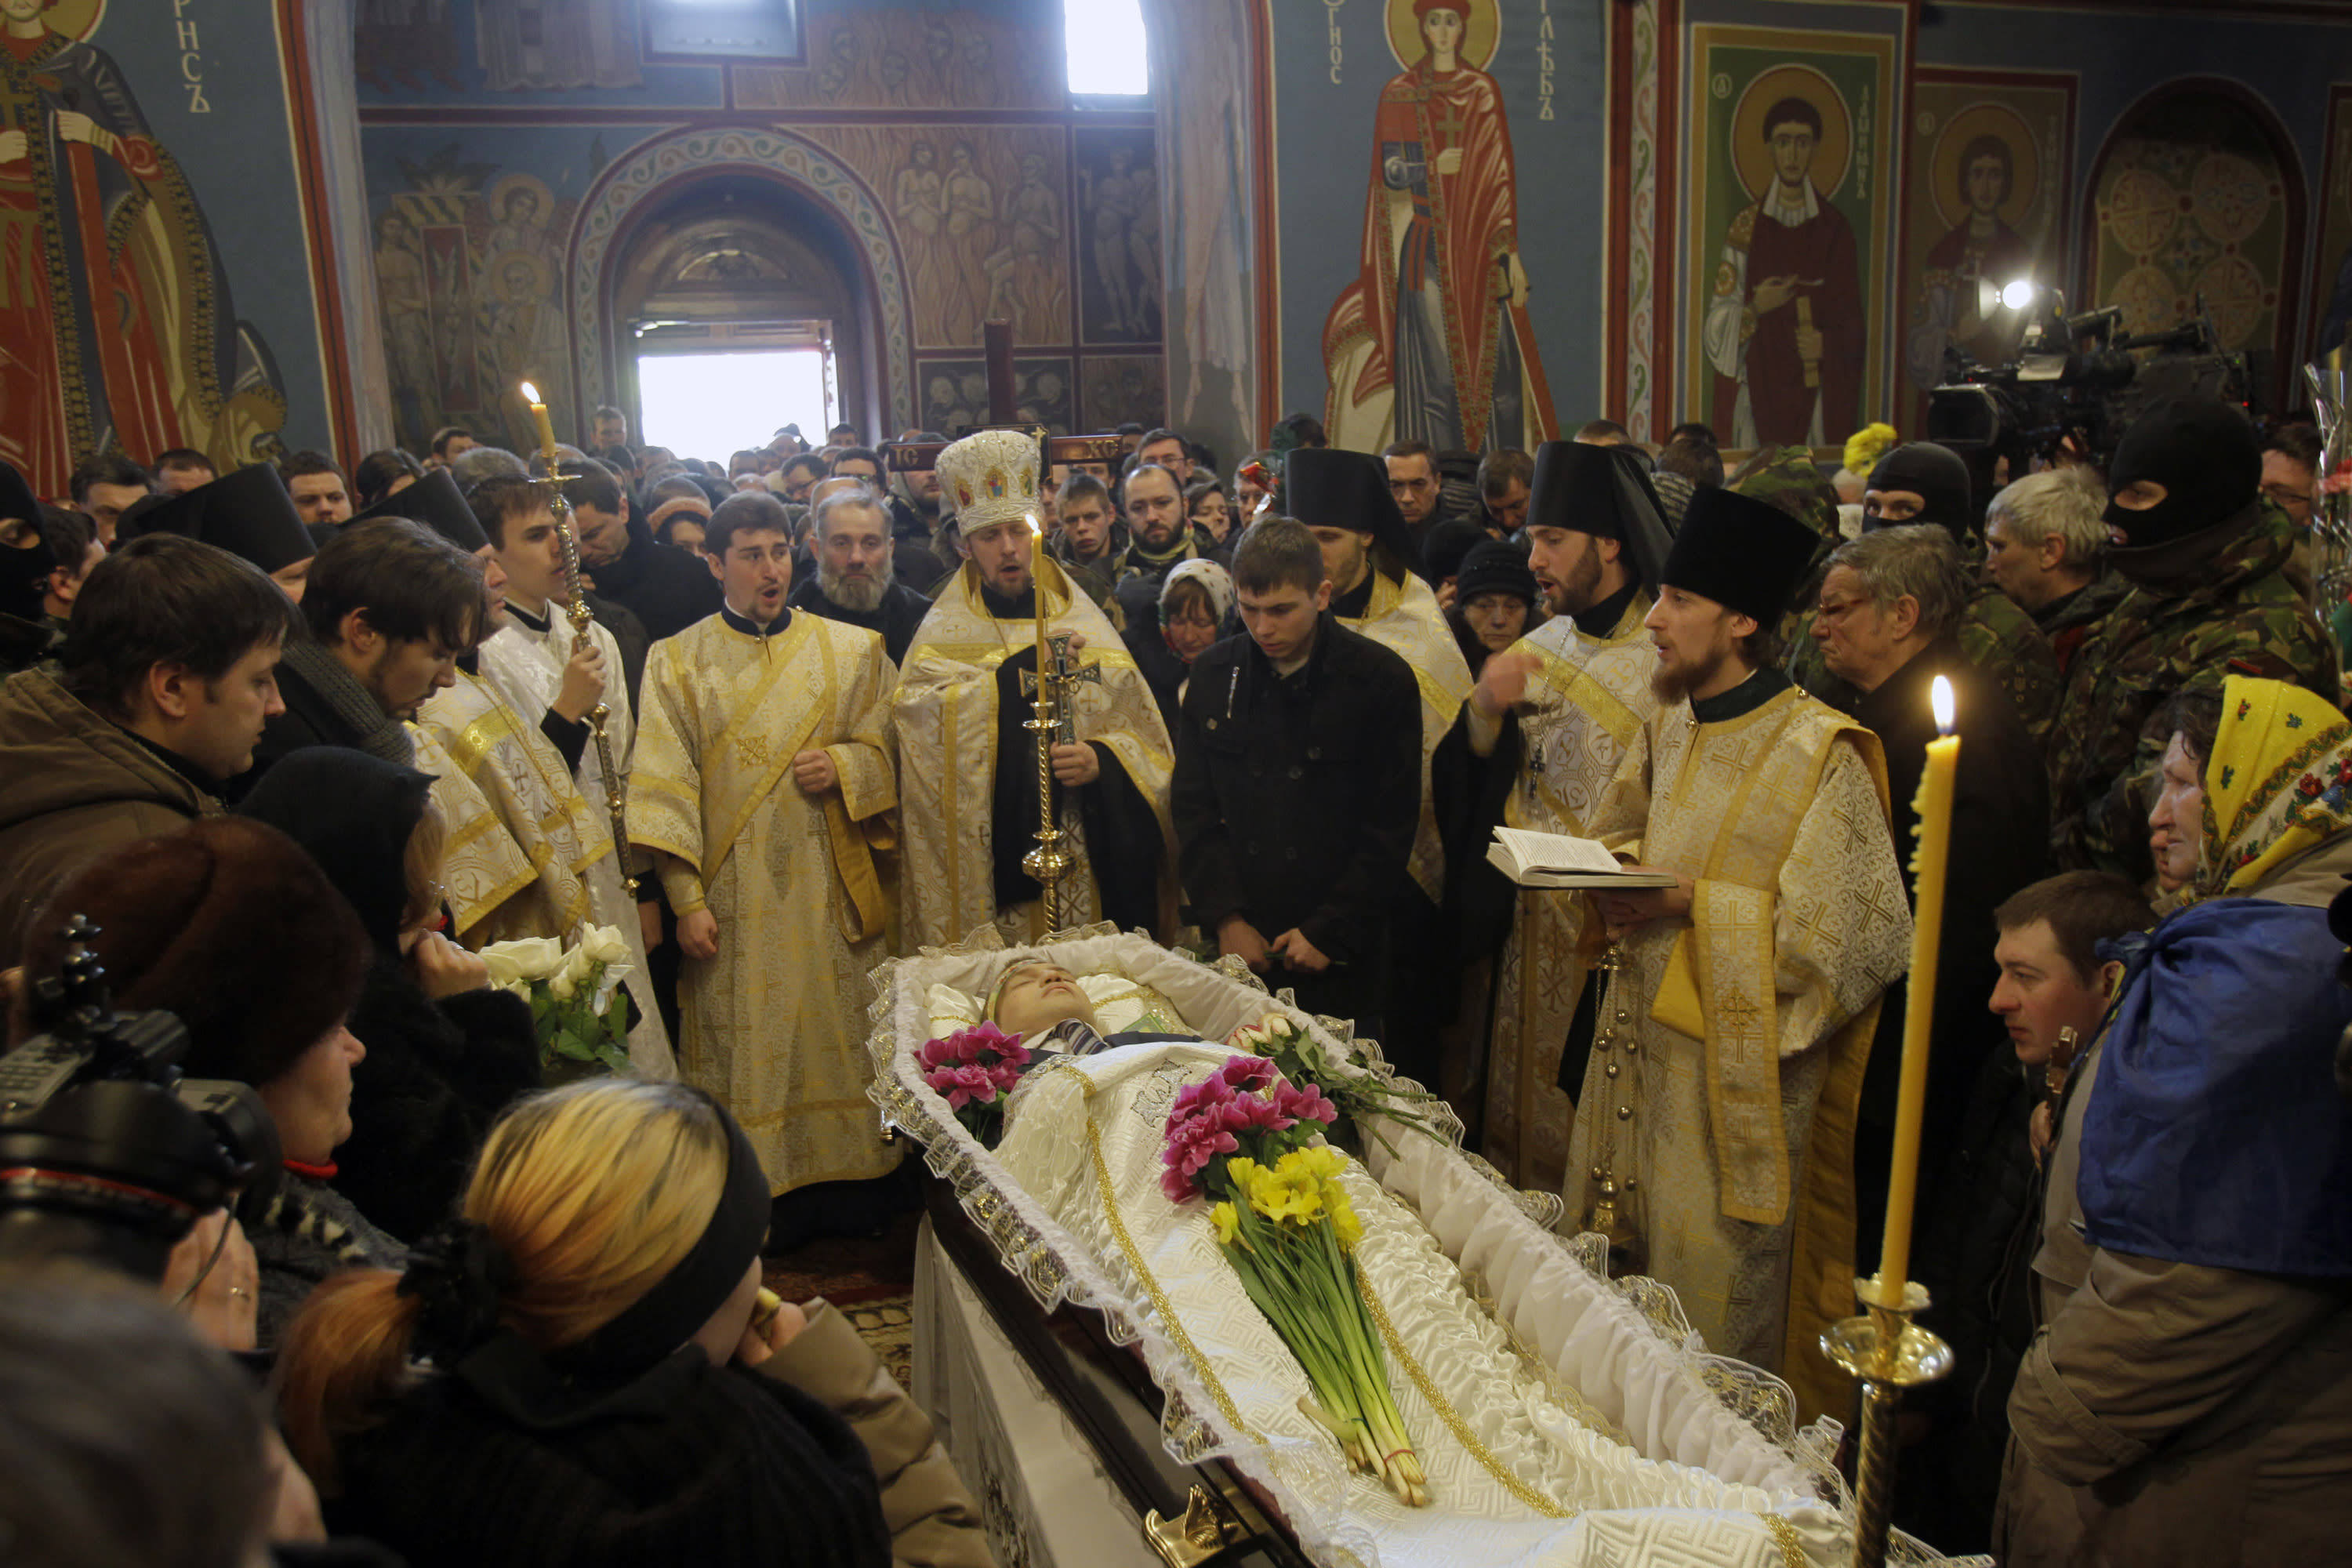 Orthodox Church priests perform a service to commemorate Mikhail Zhiznevsky, 25, one of two protesters who died of gunshot wounds on Wednesday, in Kiev, Ukraine, Sunday Jan. 26, 2014. Ukraine's opposition called off a massive rally planned for Sunday because of the funeral for a protester killed in clashes with police last week, underscoring the rising tensions in the country's two-month political crisis. The opposition contends they were shot by police in an area where demonstrators had been throwing rocks and firebombs at riot police for several days. (AP Photo/Darko Vojinovic)